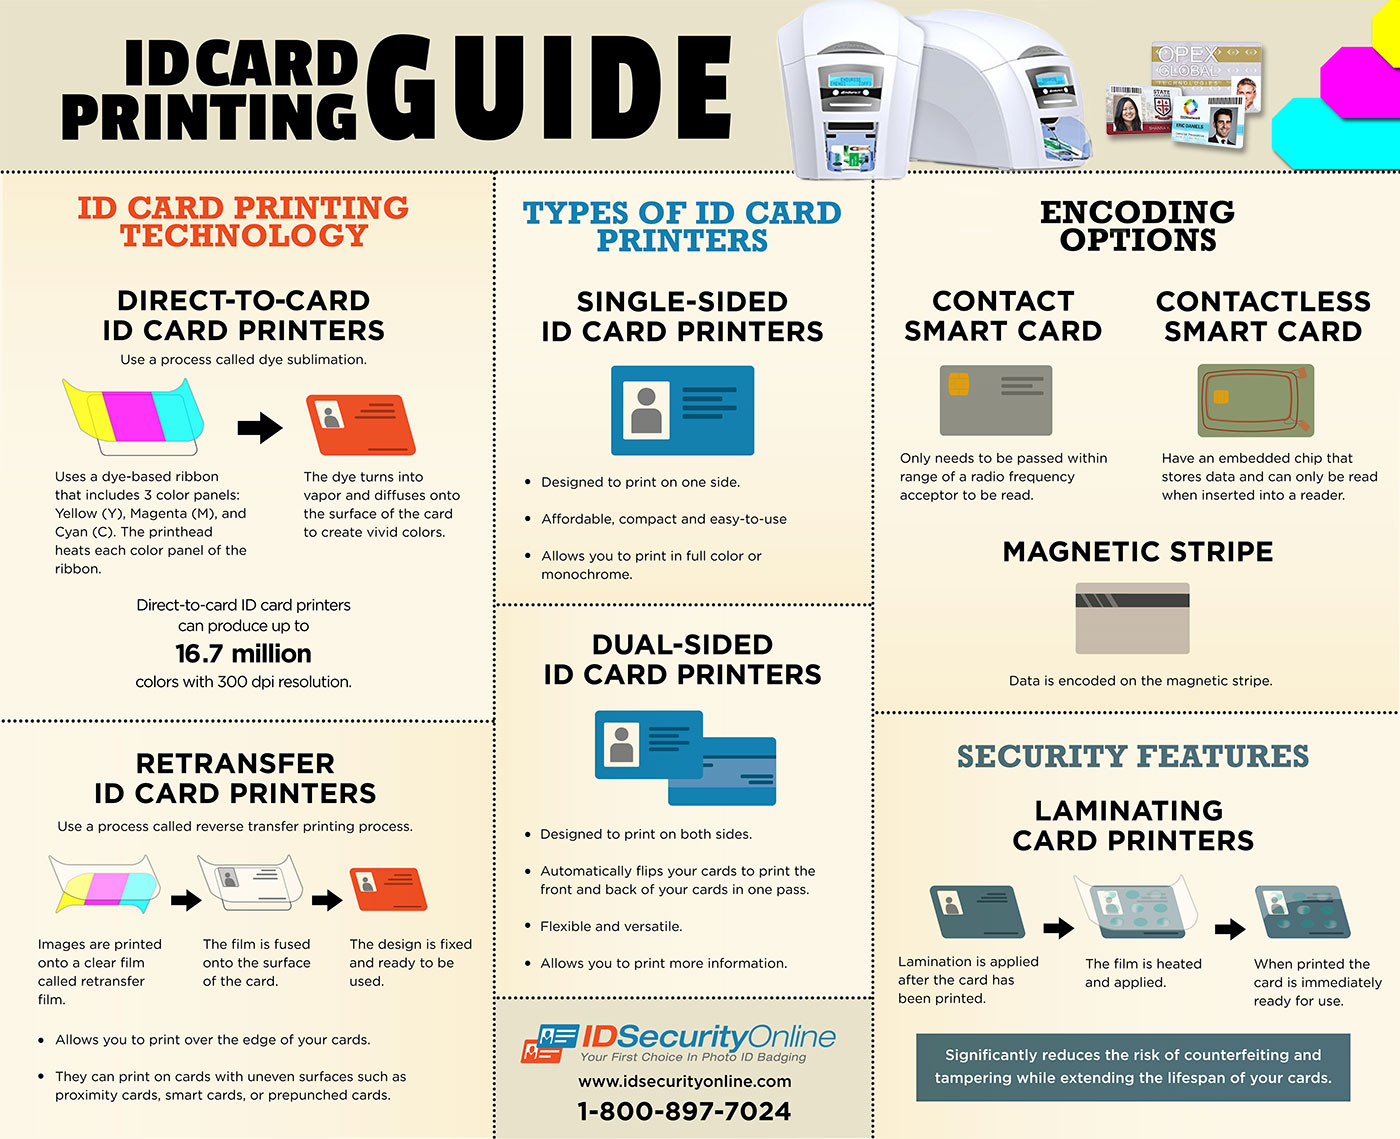 ID Card Printing Guide